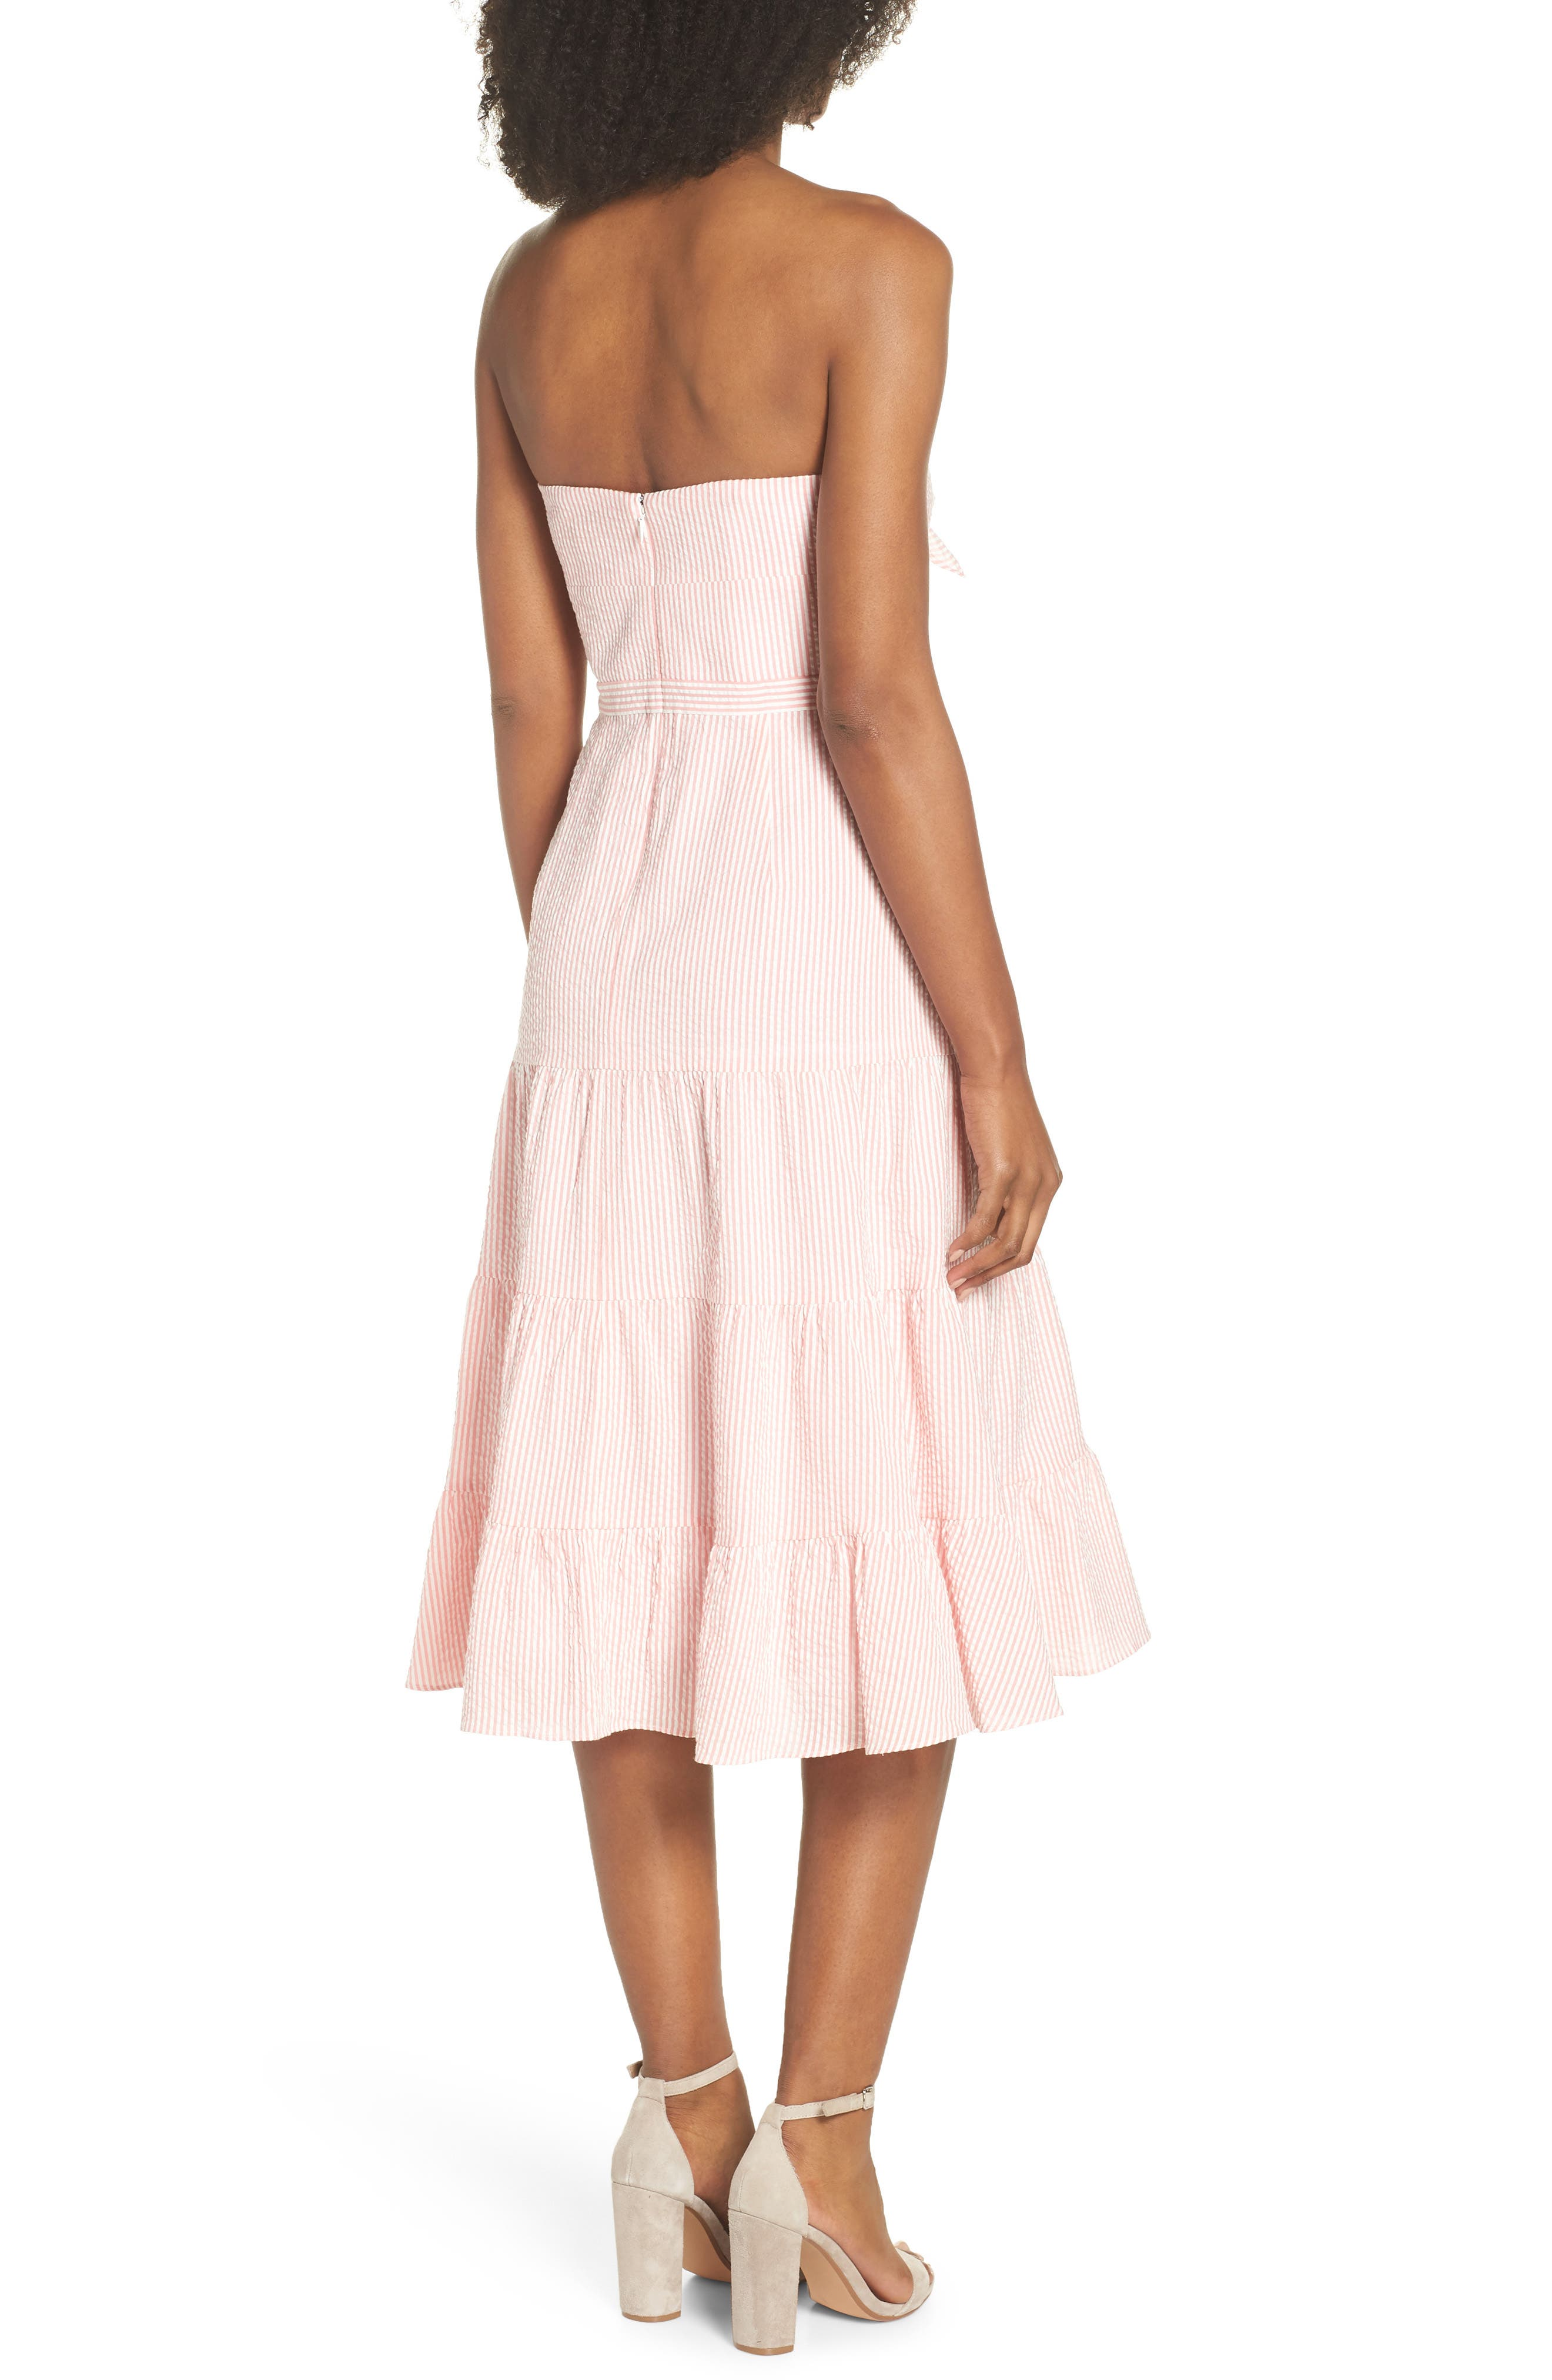 J.Crew Tie Front Strapless Dress,                             Alternate thumbnail 2, color,                             Bright Coral